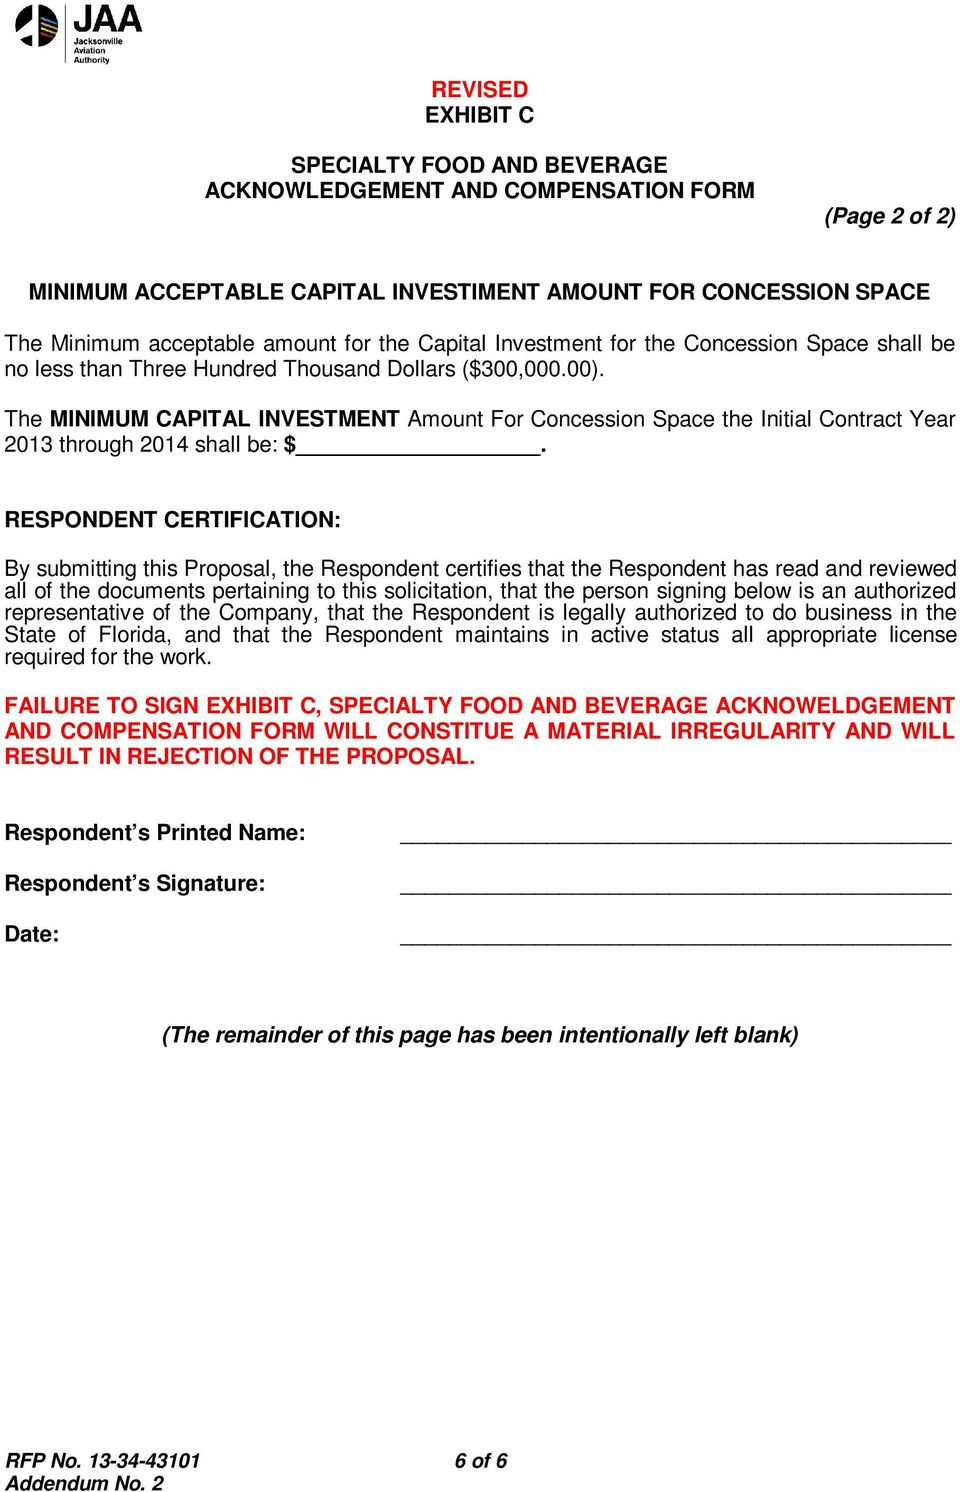 The MINIMUM CAPITAL INVESTMENT Amount For Concession Space the Initial Contract Year 2013 through 2014 shall be: $.